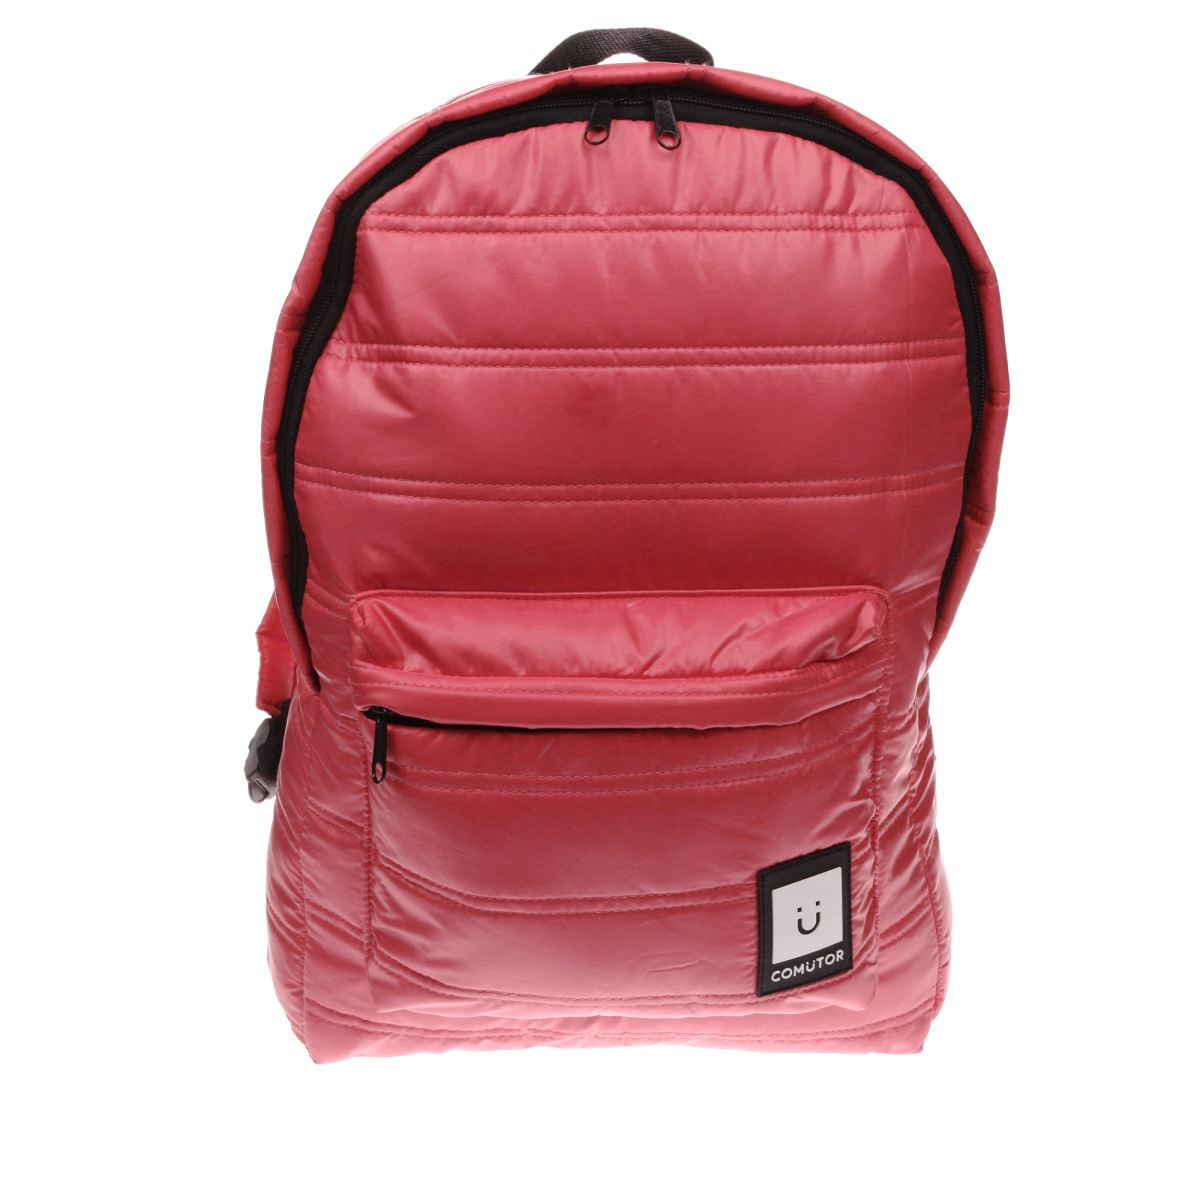 comutor Comutor Pink 12 Hour Backpack Bags